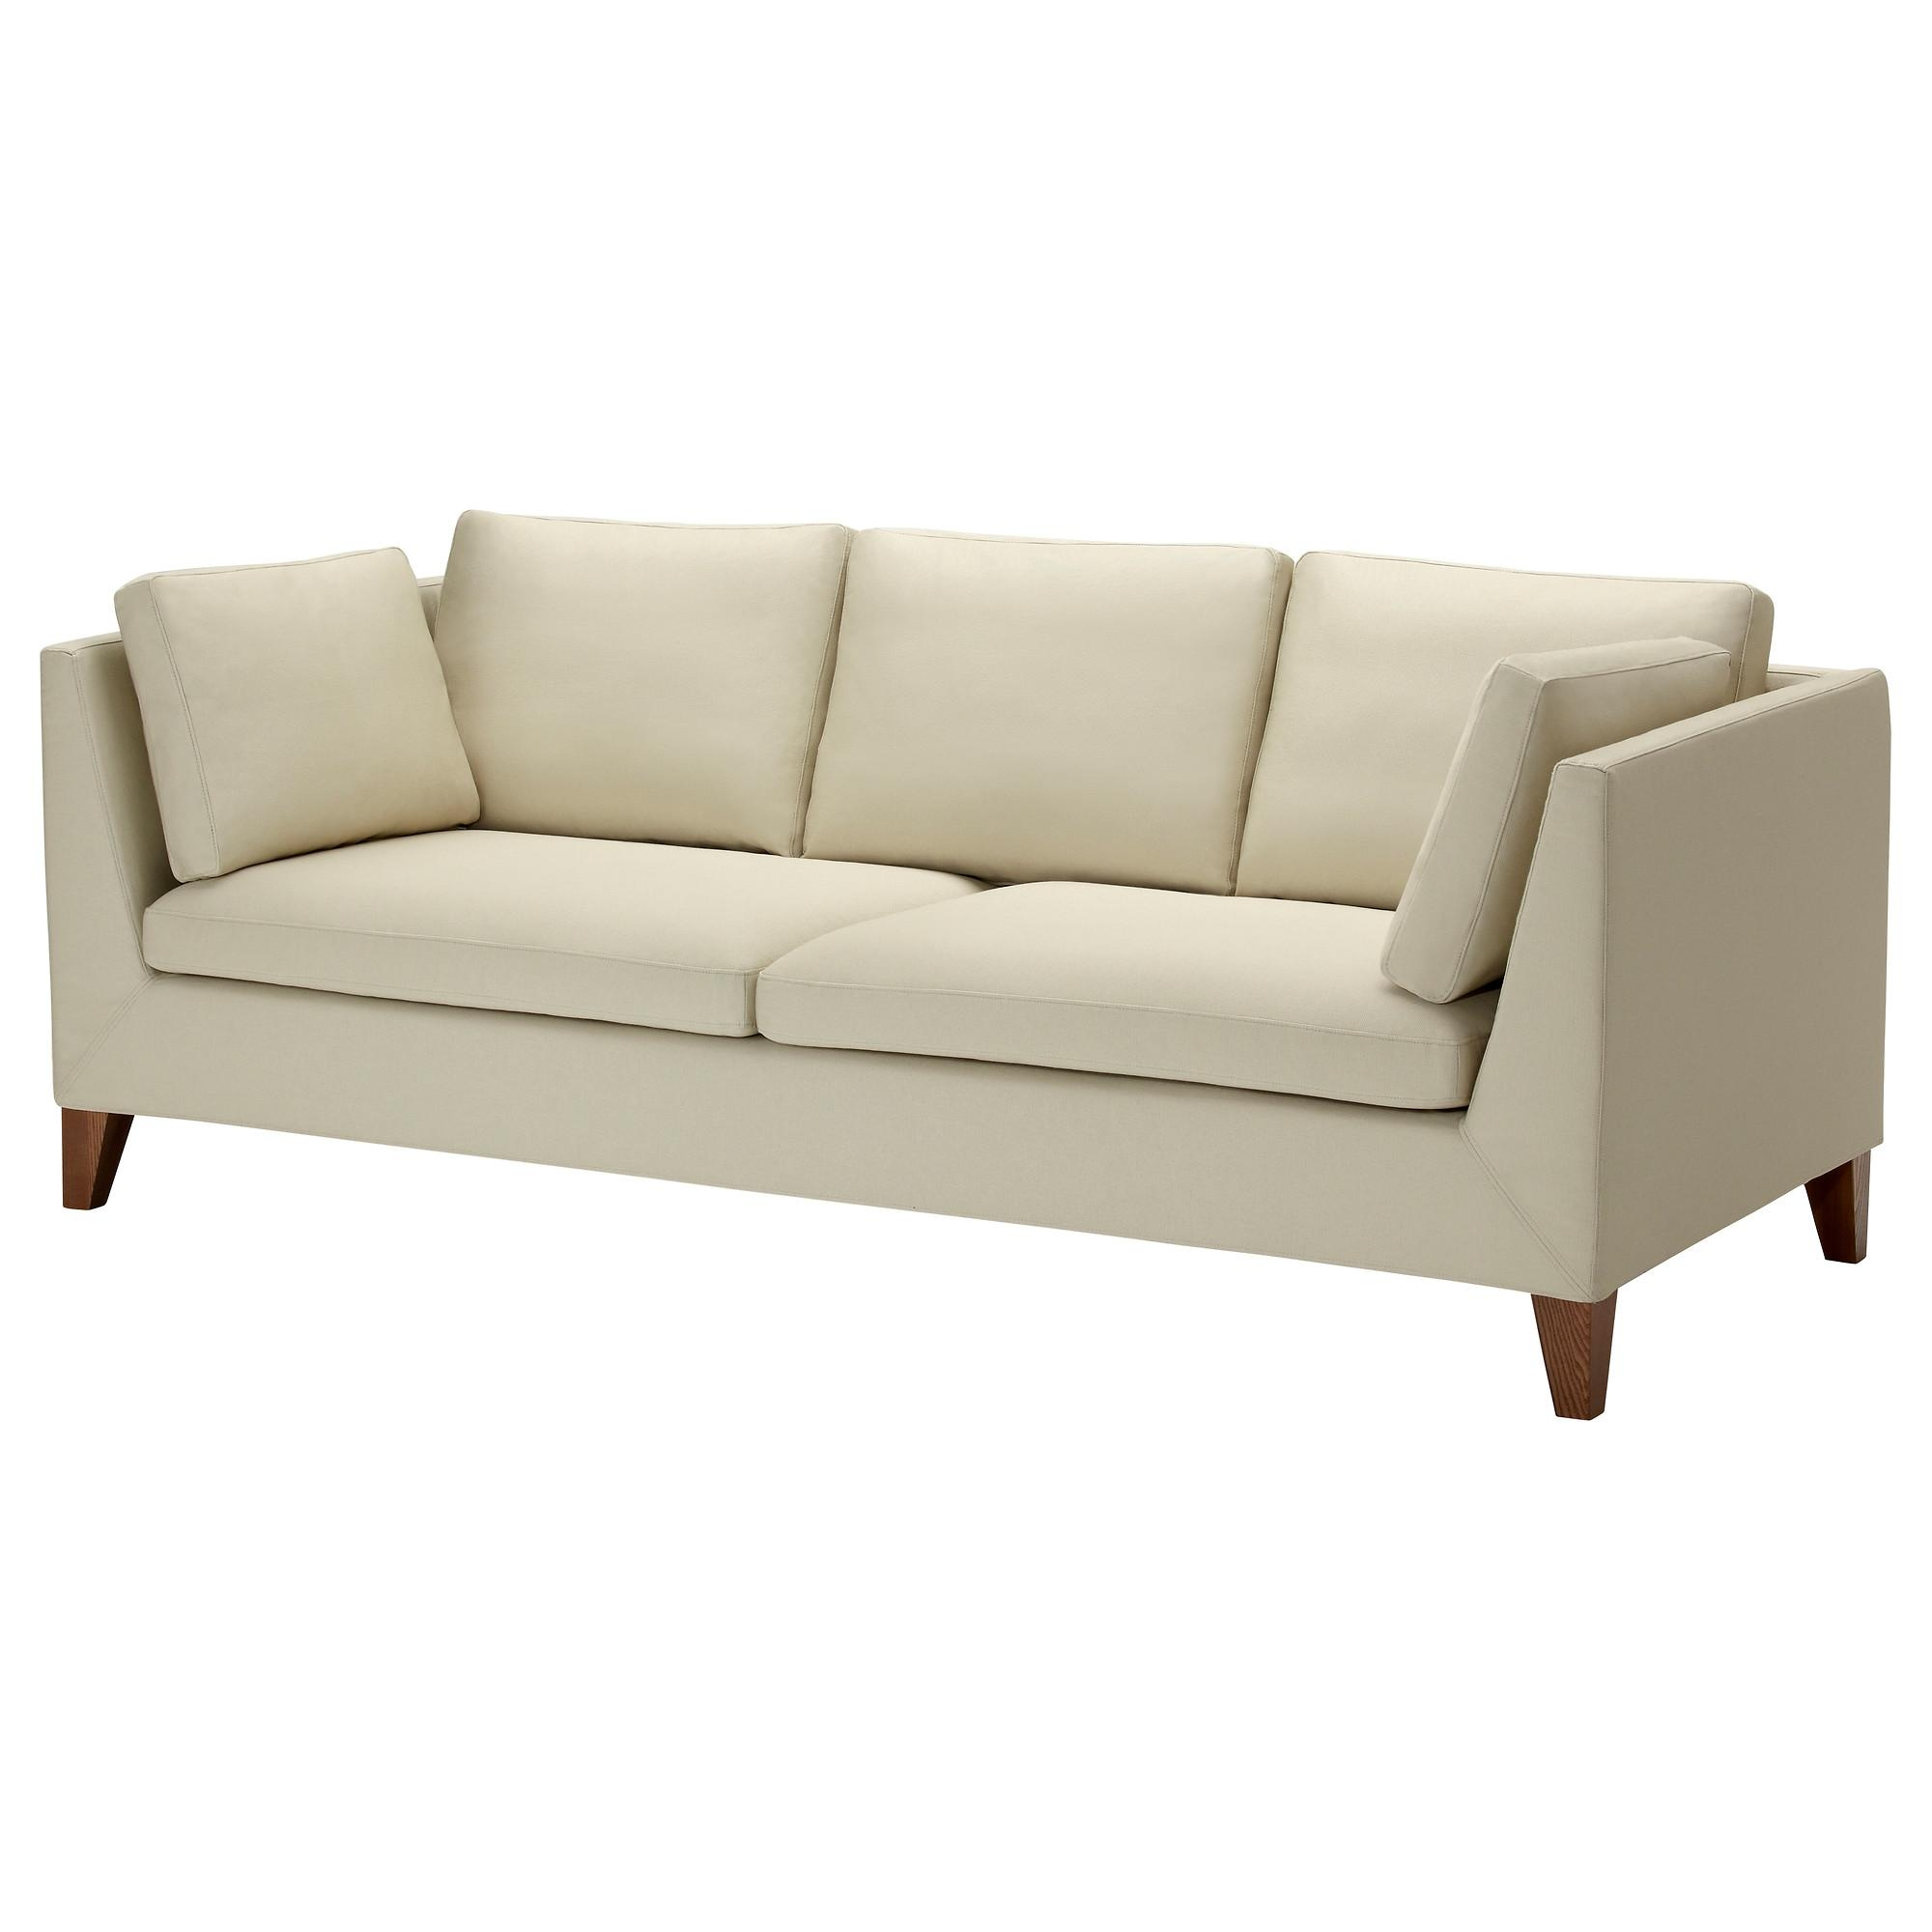 2019 Latest Narrow Depth Sofas